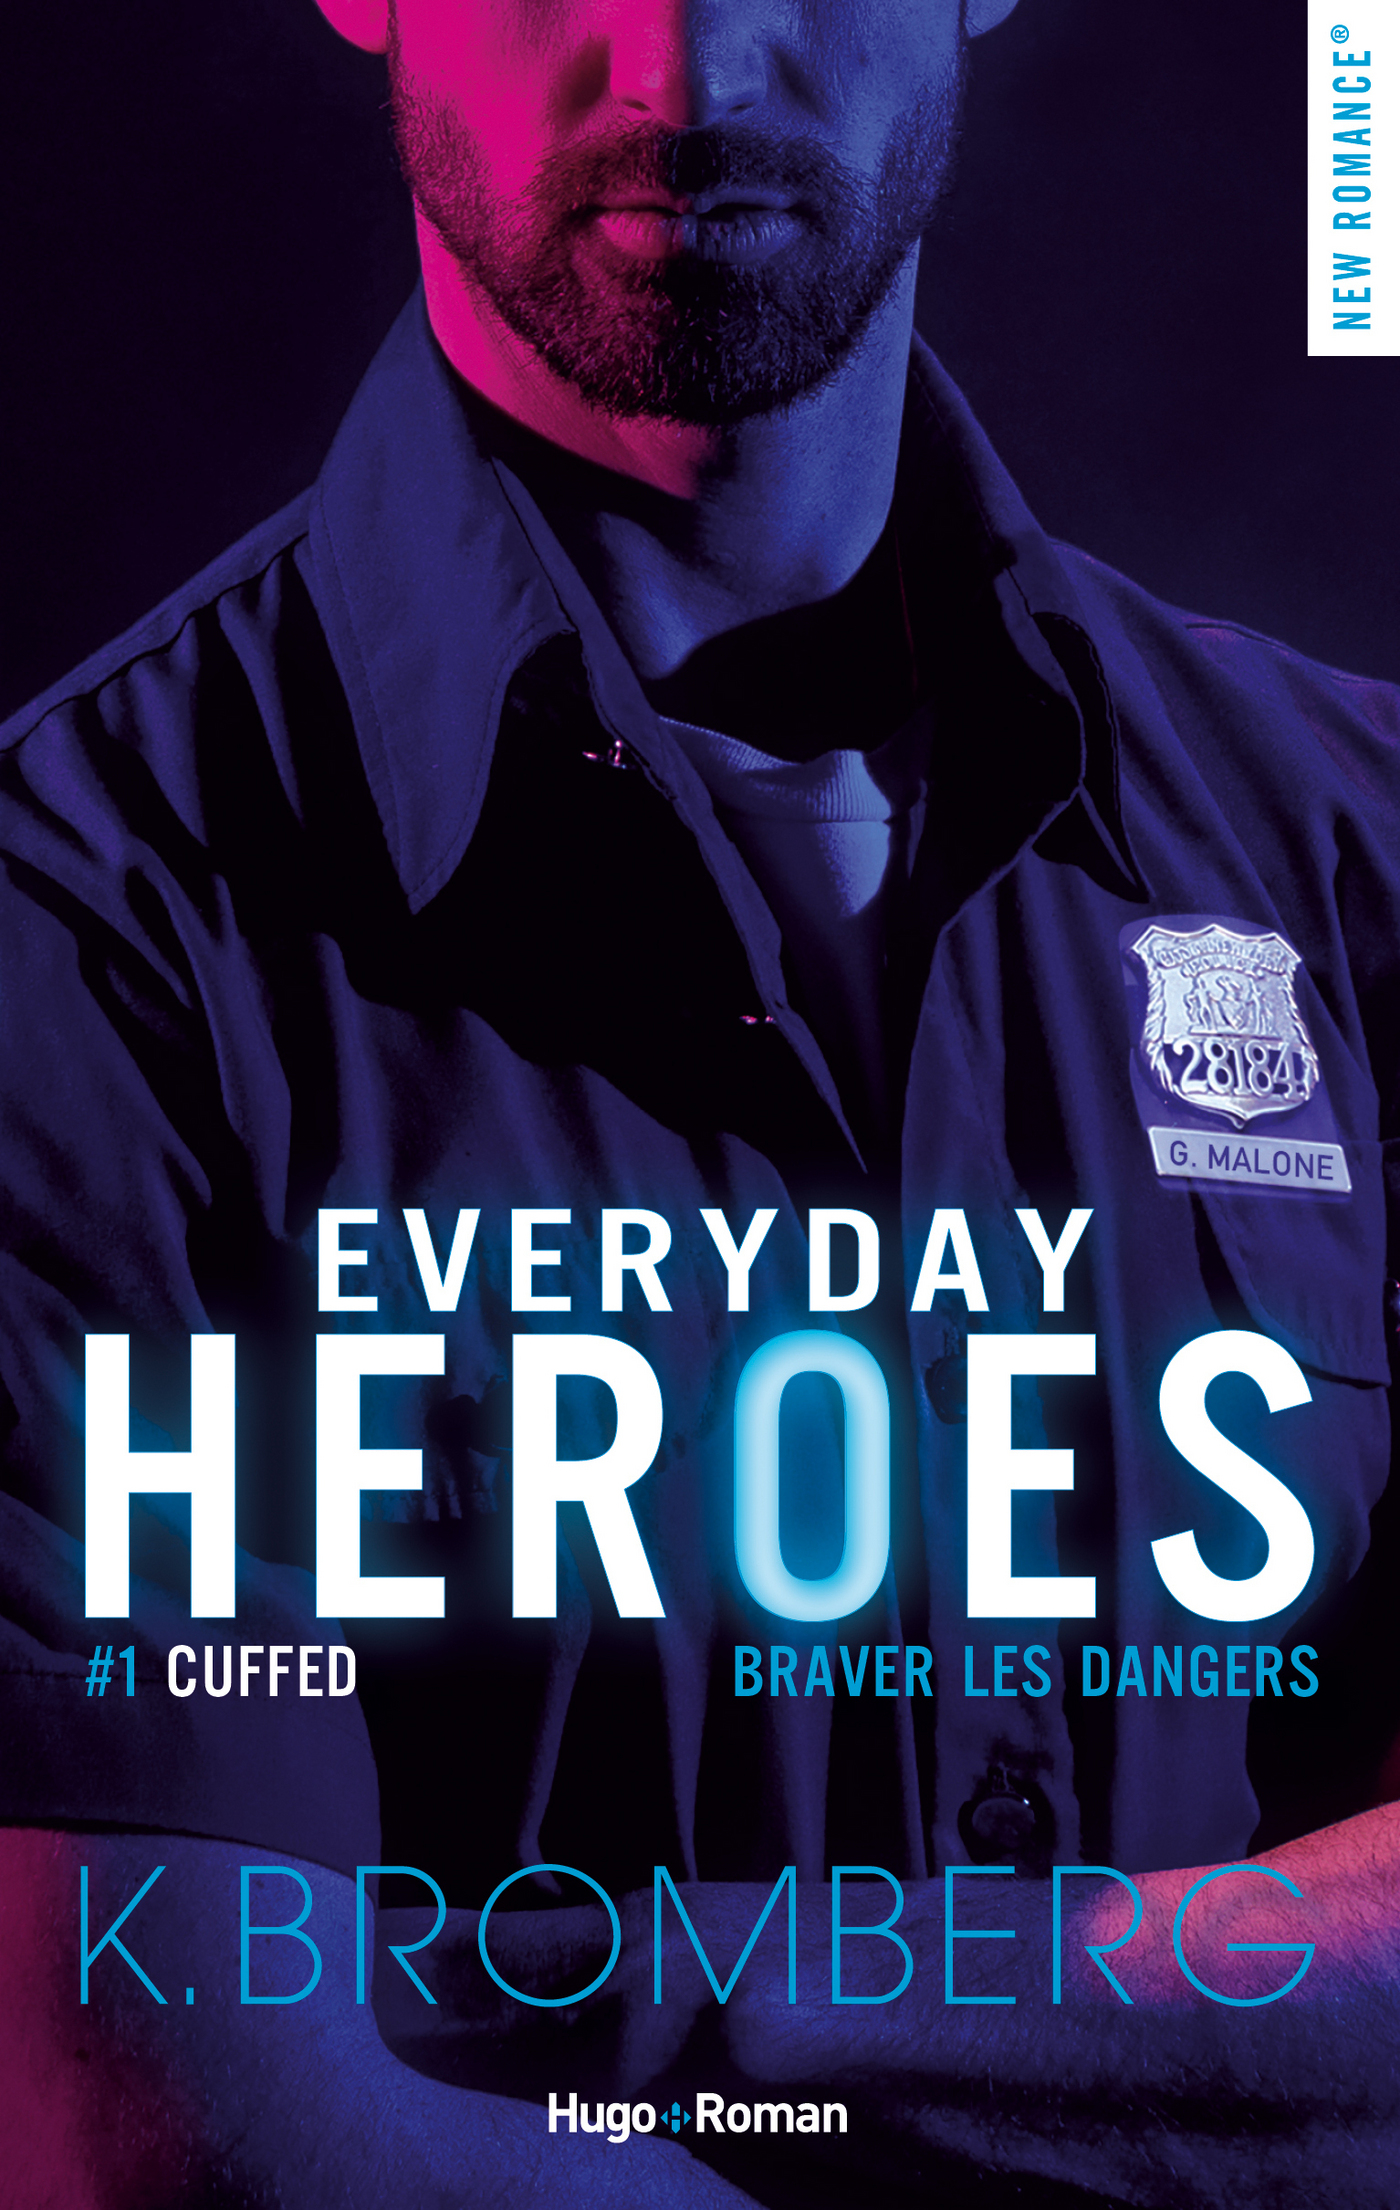 Everyday heroes - tome 1 Cuffed épisode 1